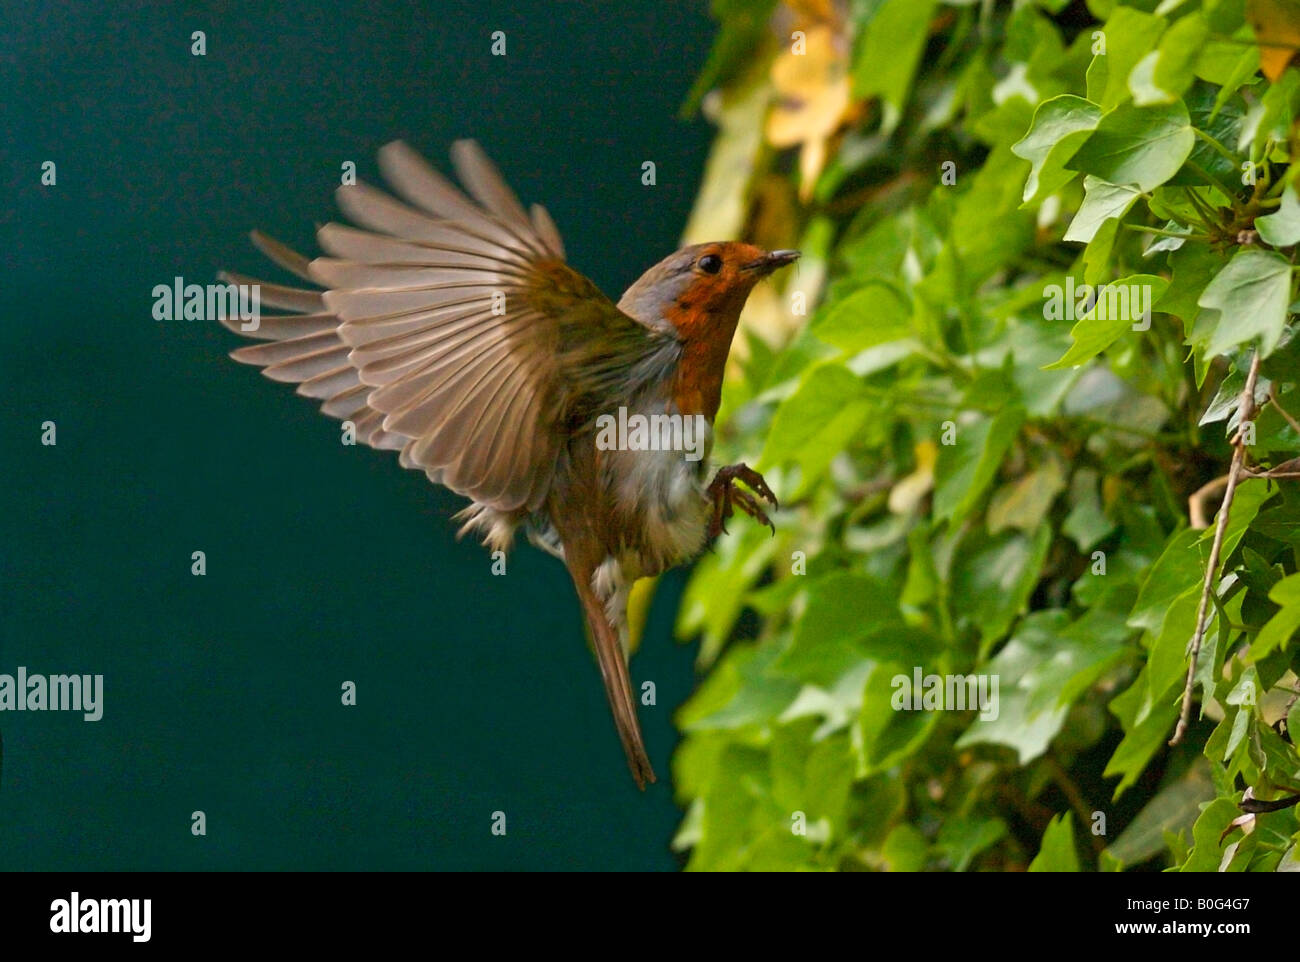 Robins Flying Stock Photos Images Alamy Wiring Instructions Becu Robin In Flight Erithacus Rubecula Image